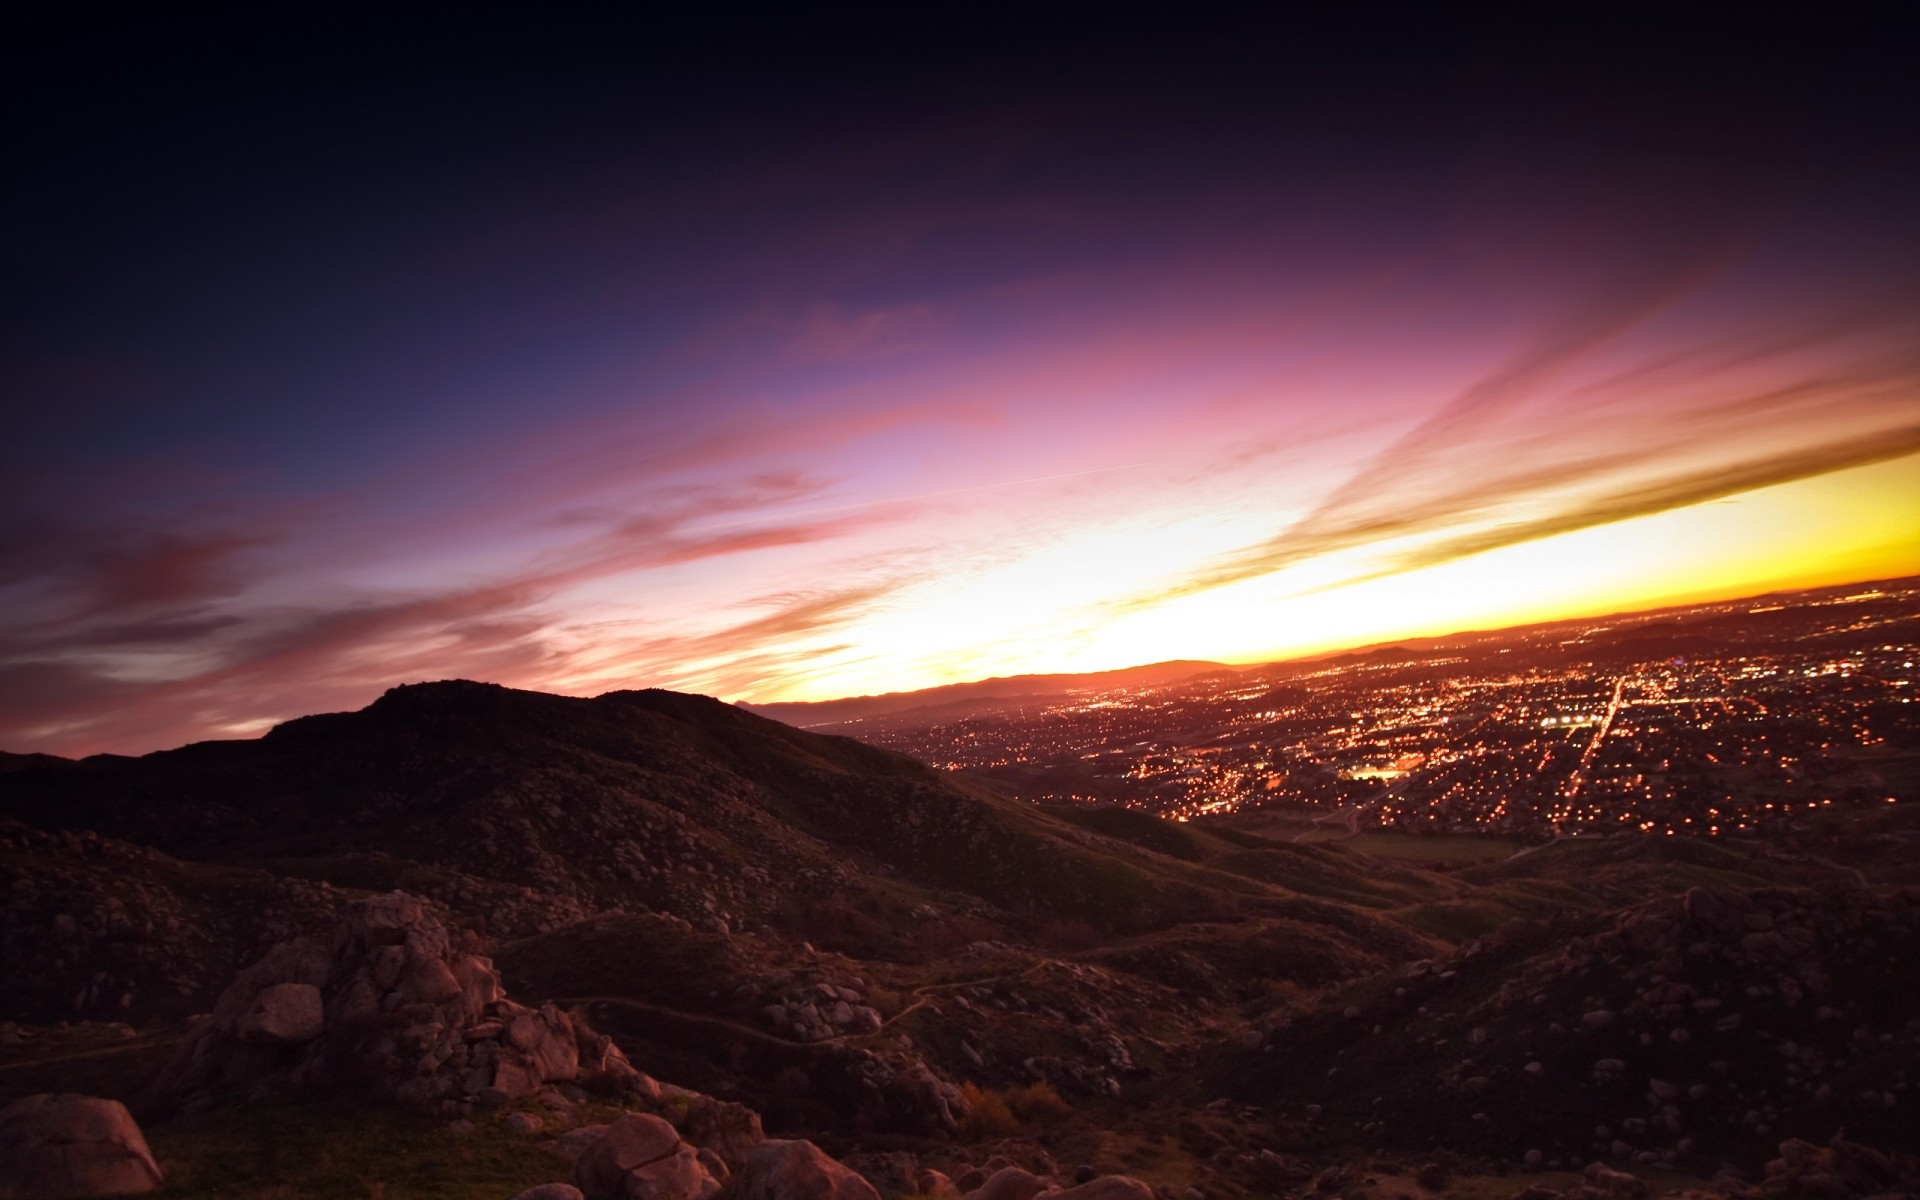 mountain city big and beautiful singles 10 best affordable mountain towns for retirement  a job that took him to many of america's most beautiful places,  in salt lake city, the host city for the 2002 winter olympics, the average.